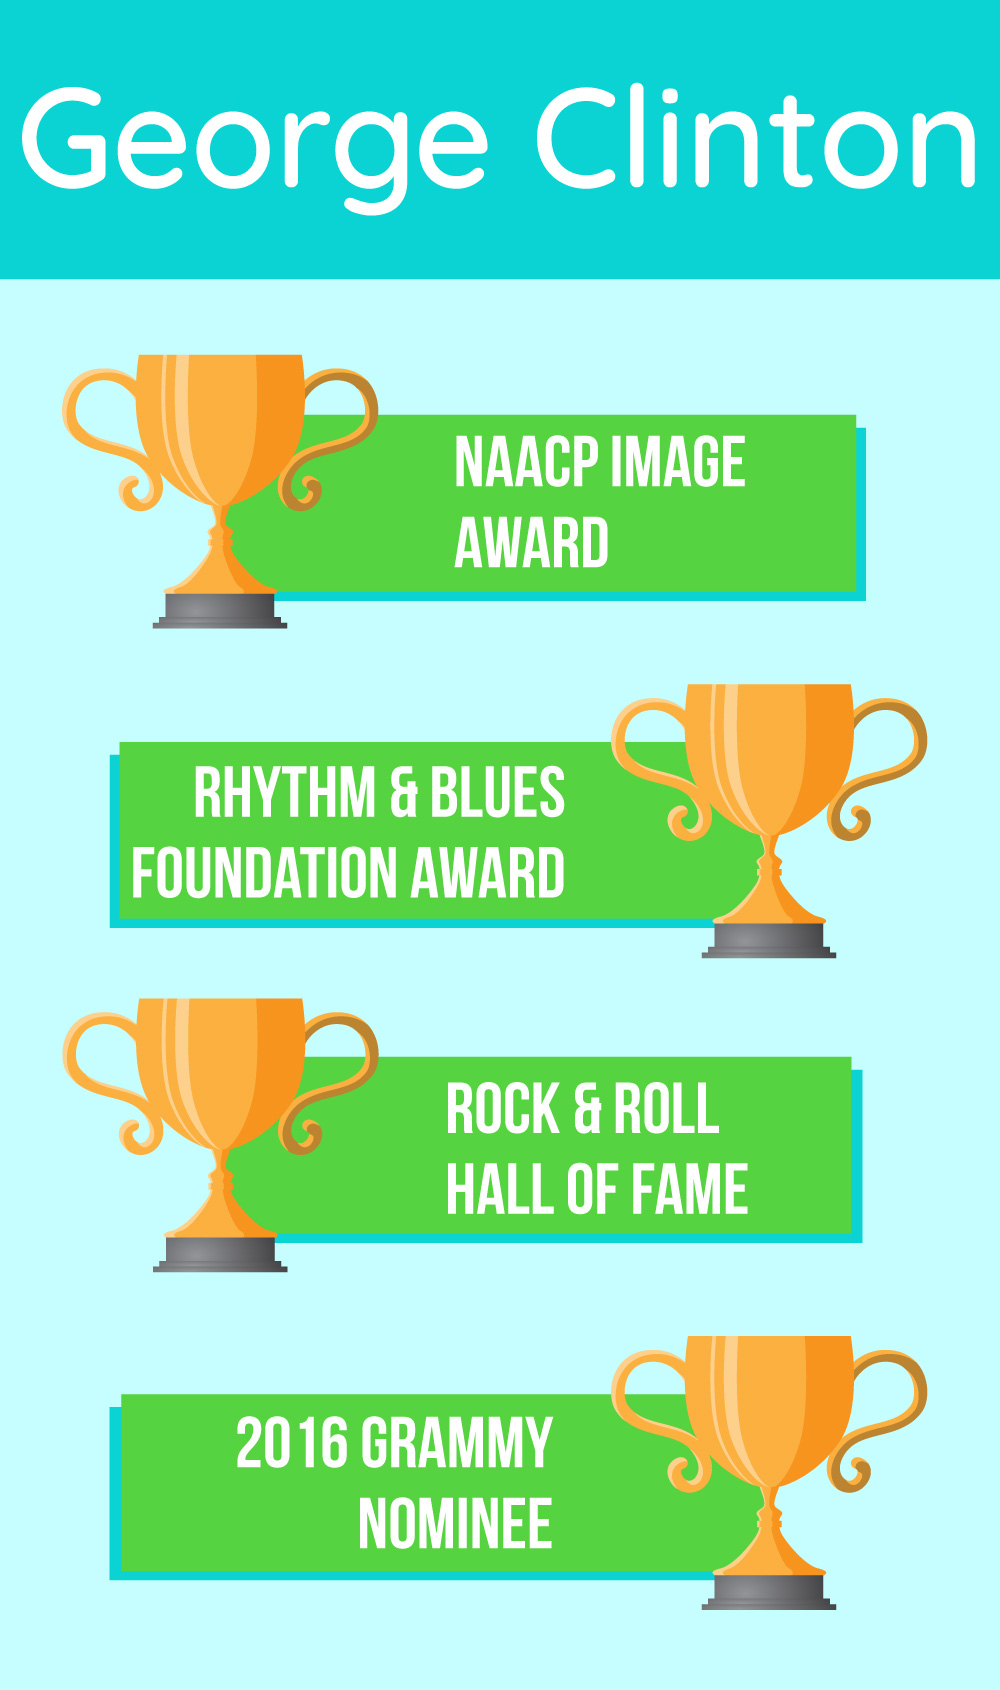 george clinton awards infographic